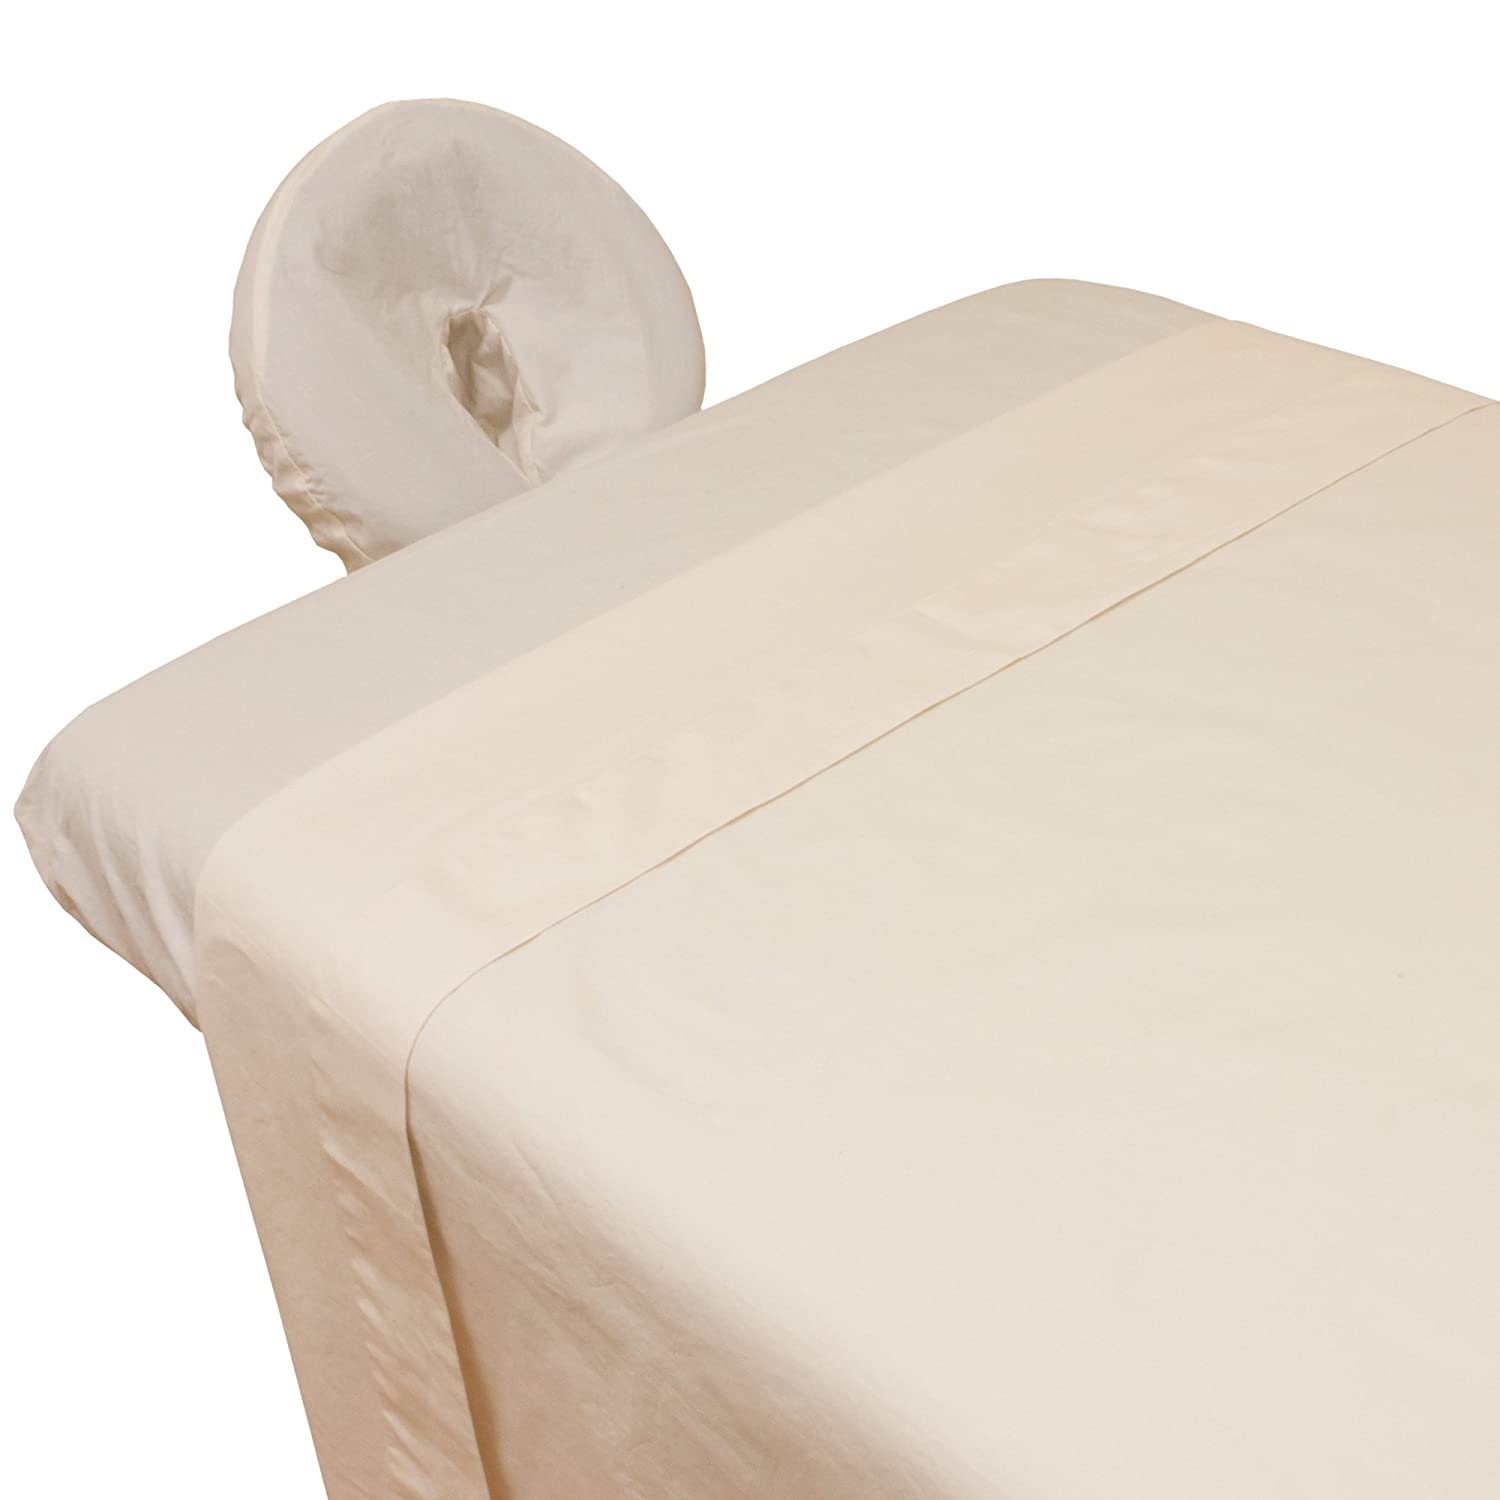 Arcadia© Organic Percale Massage Table Sheet Set Body Linen